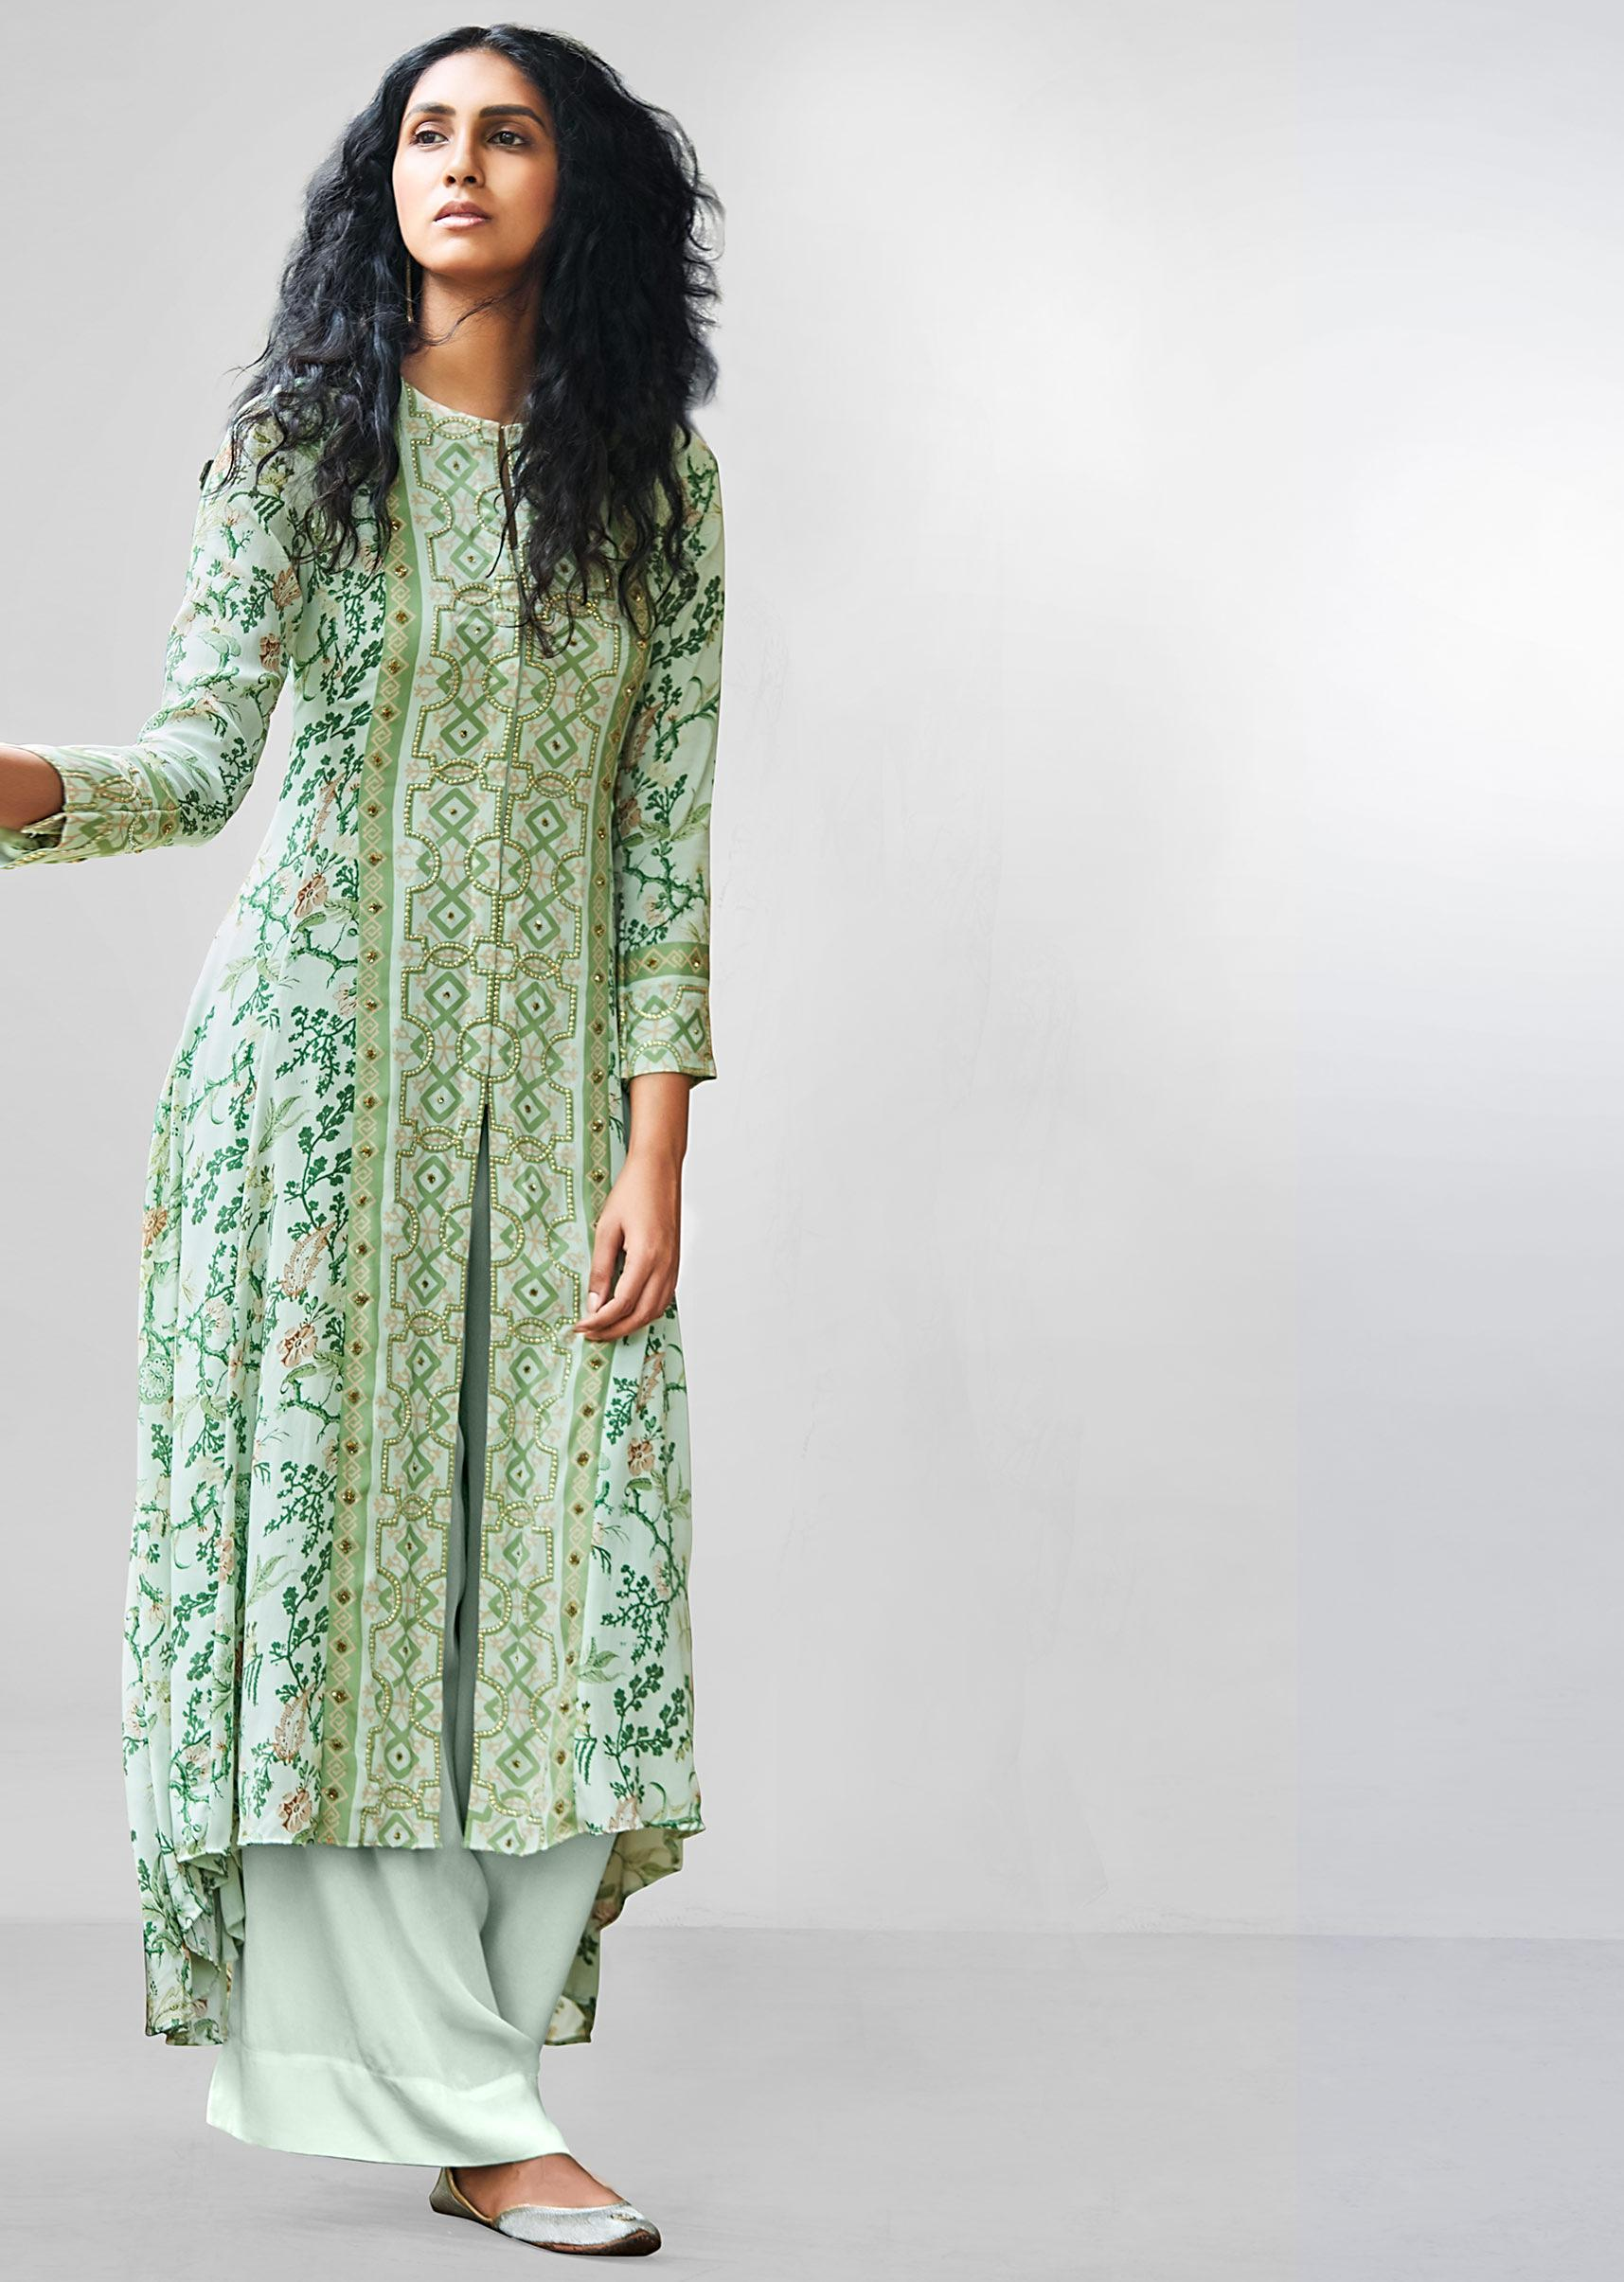 Sea Green Floral Printed Palazzo Suit